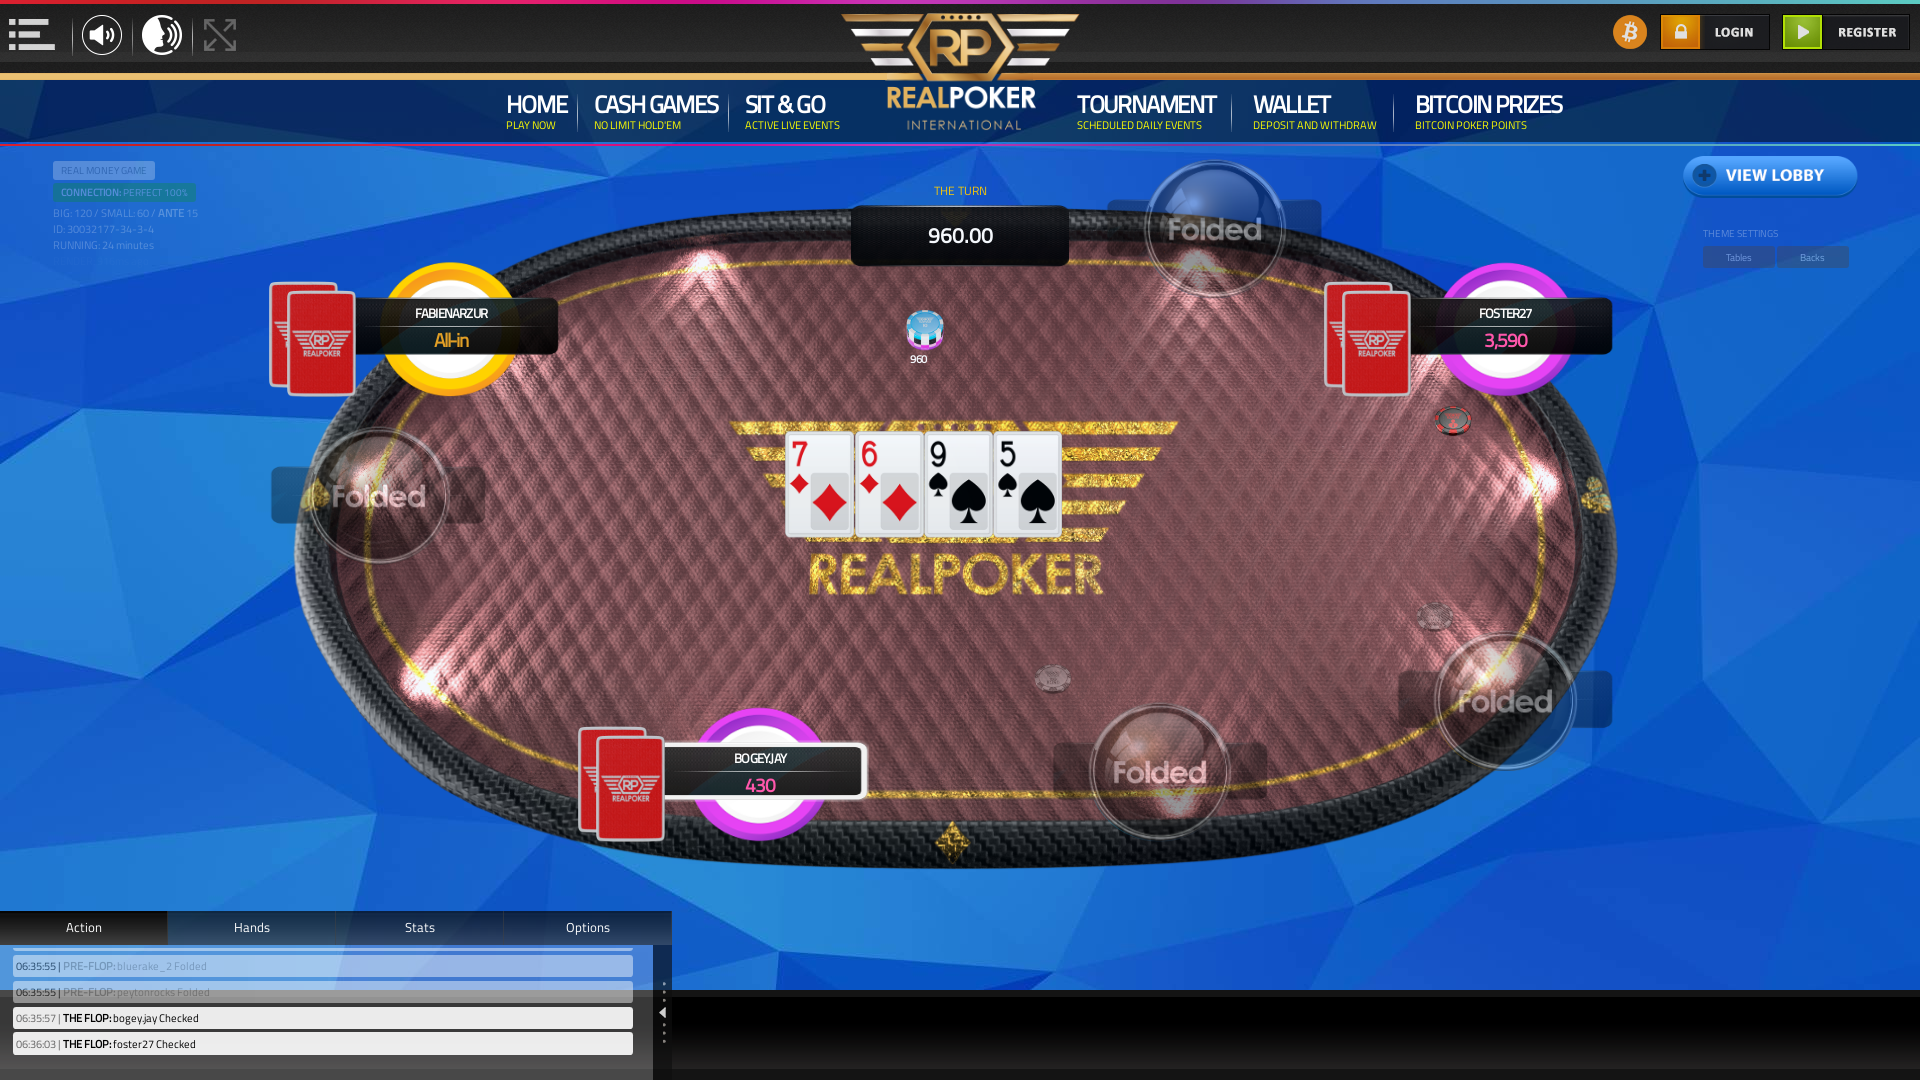 Real  poker on a 10 player table in the 23rd minute of the game